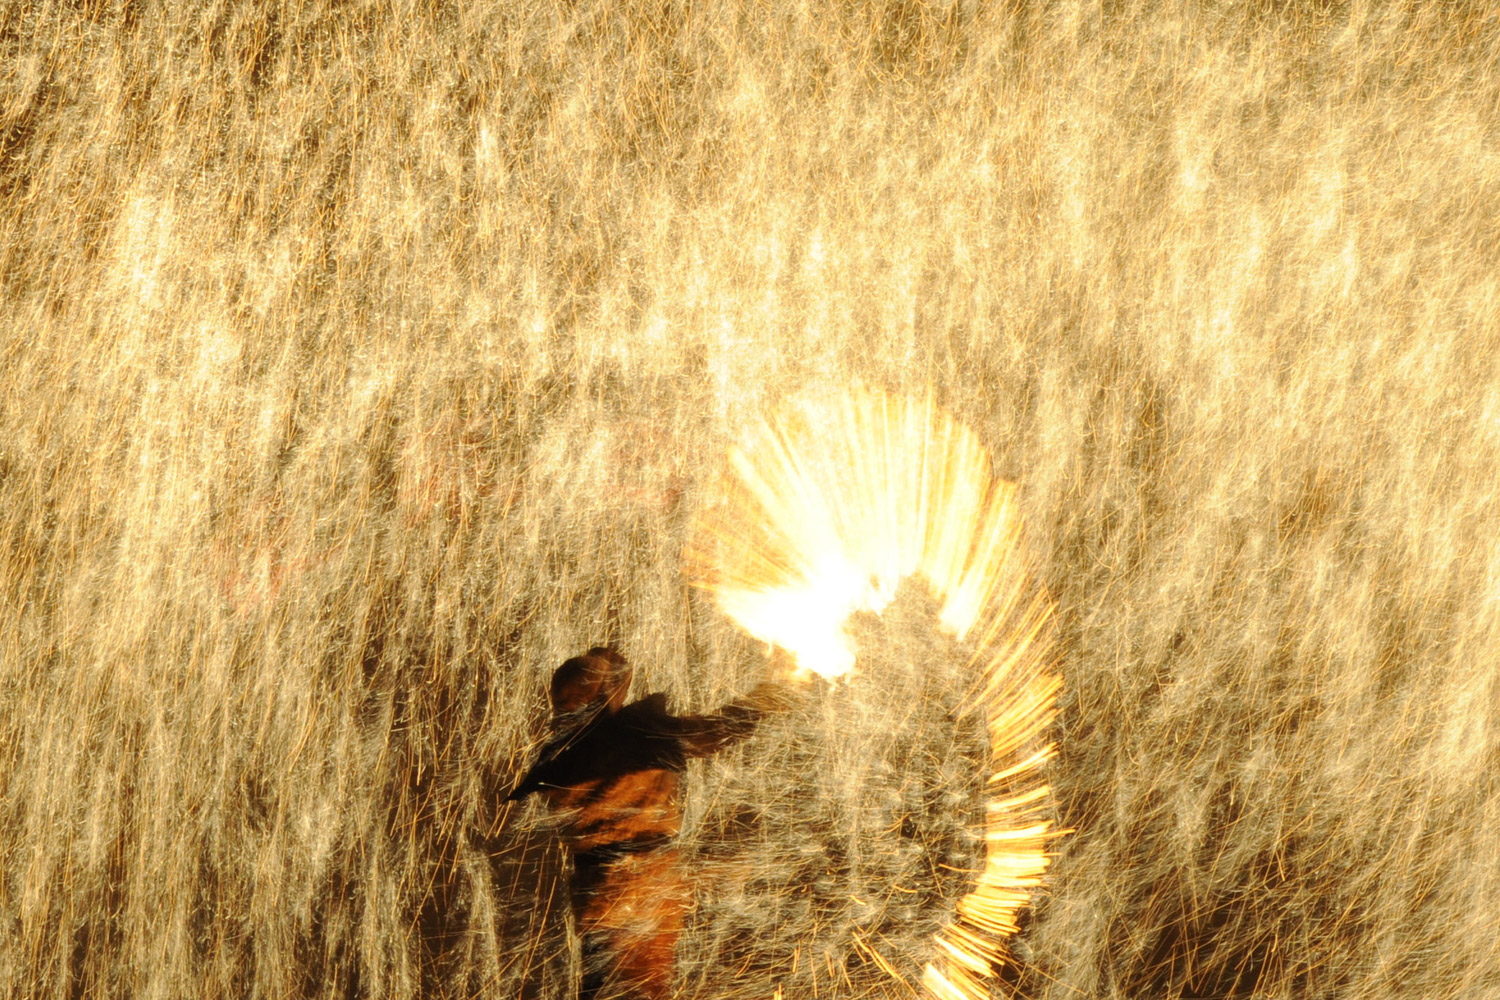 February 6, 2012. A blacksmith throws molten metal against a cold wall to create sparks, as he and others celebrate the Lantern Festival which traditionally marks the end of the Lunar New Year celebrations, in Nuanquan, China.